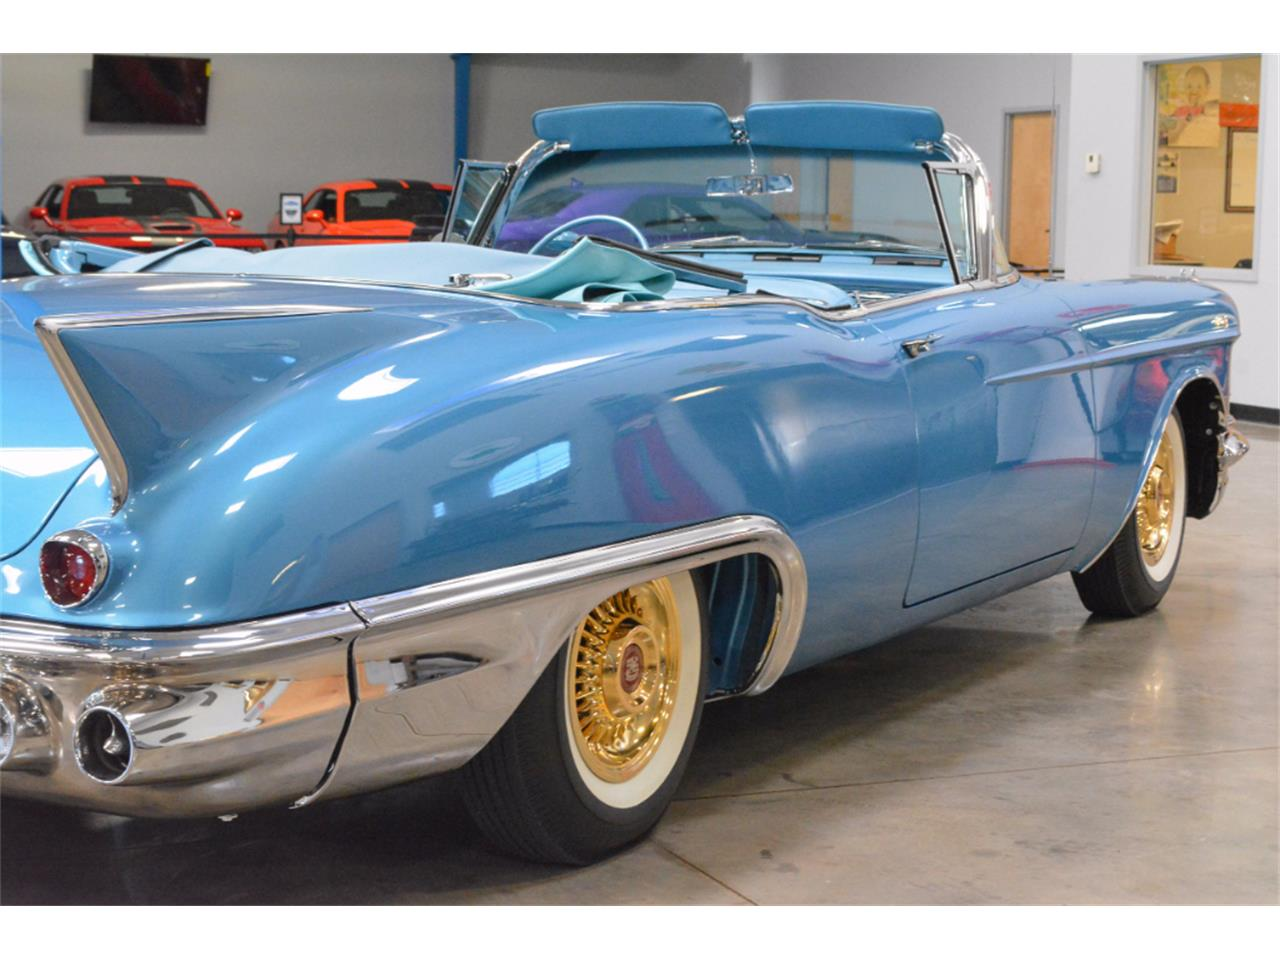 Large Picture of 1957 Cadillac Eldorado Auction Vehicle Offered by John Kufleitner's Galleria - LKLZ